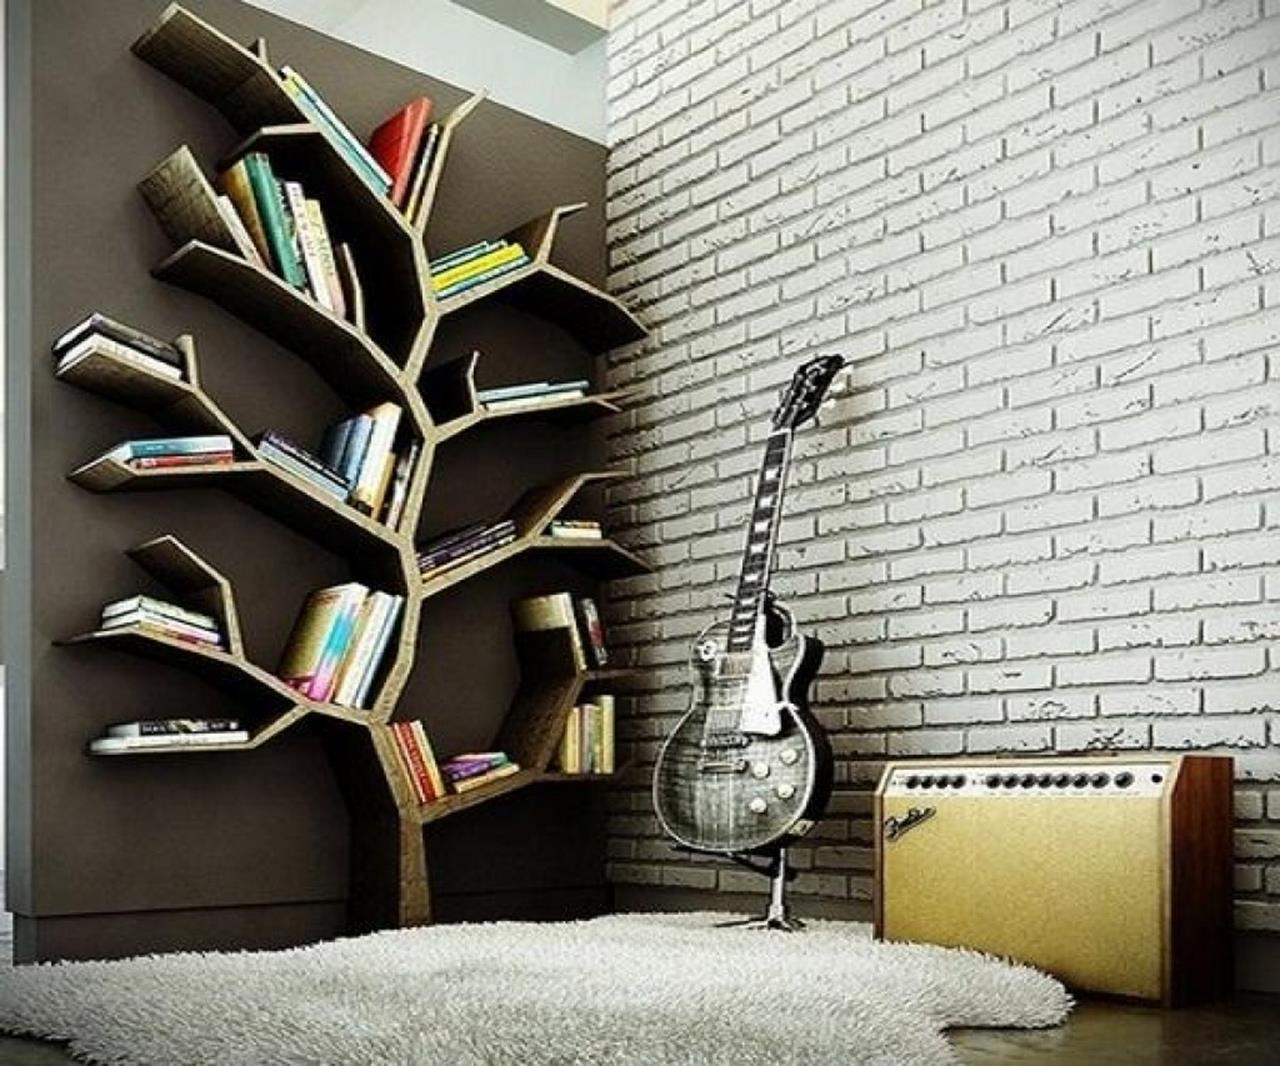 Brilliant Ideas Cheap Ways To Decorate Apartment 7